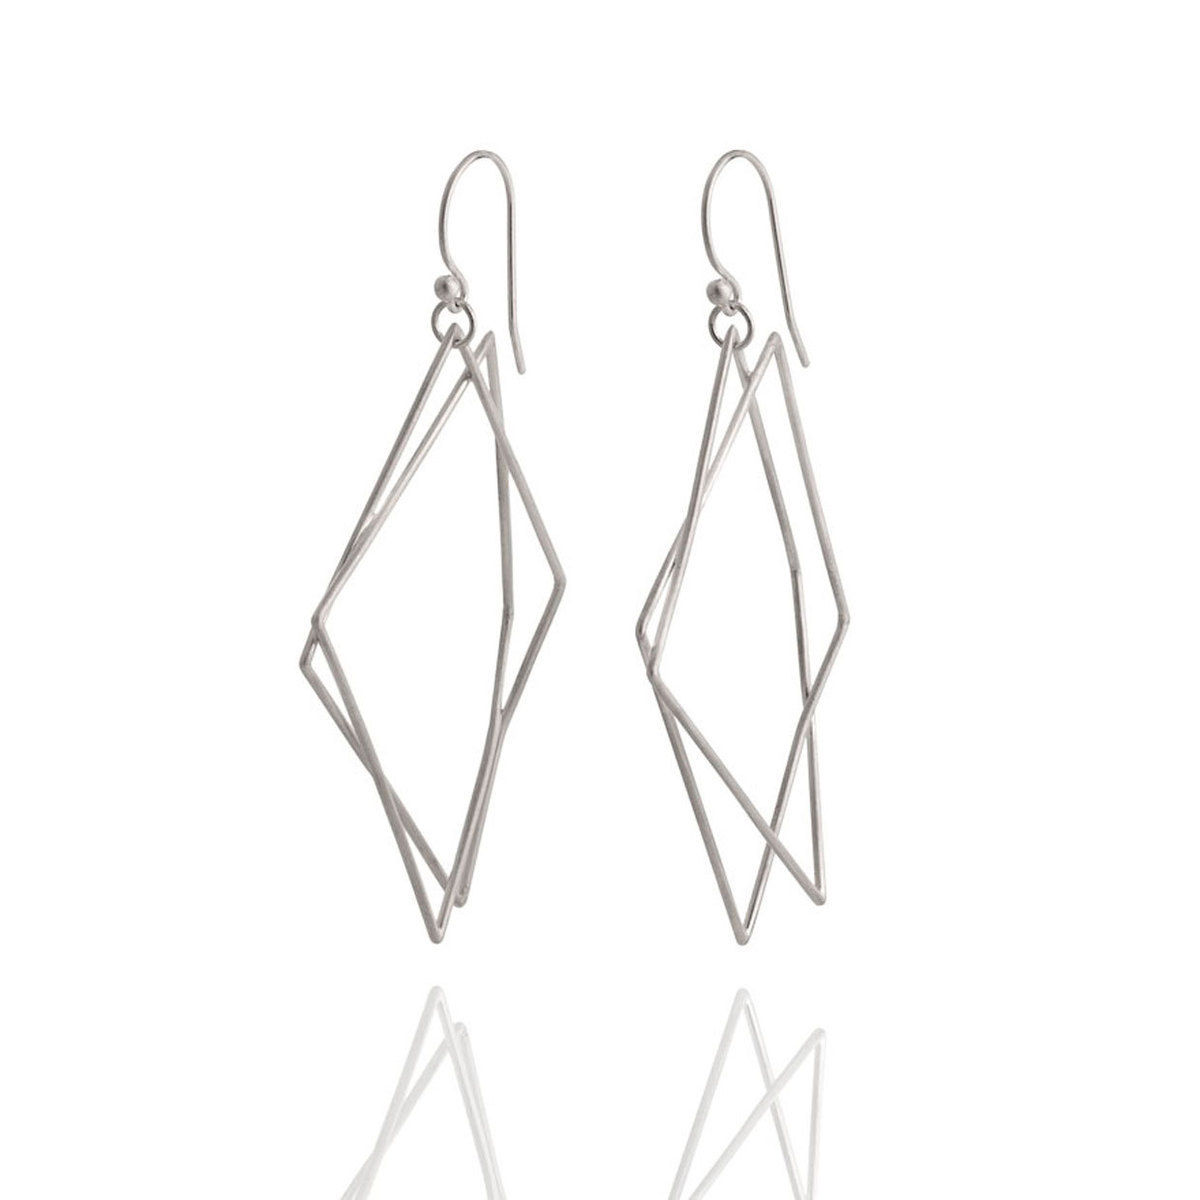 Fab.com Shear Earrings, 34% offFab.com